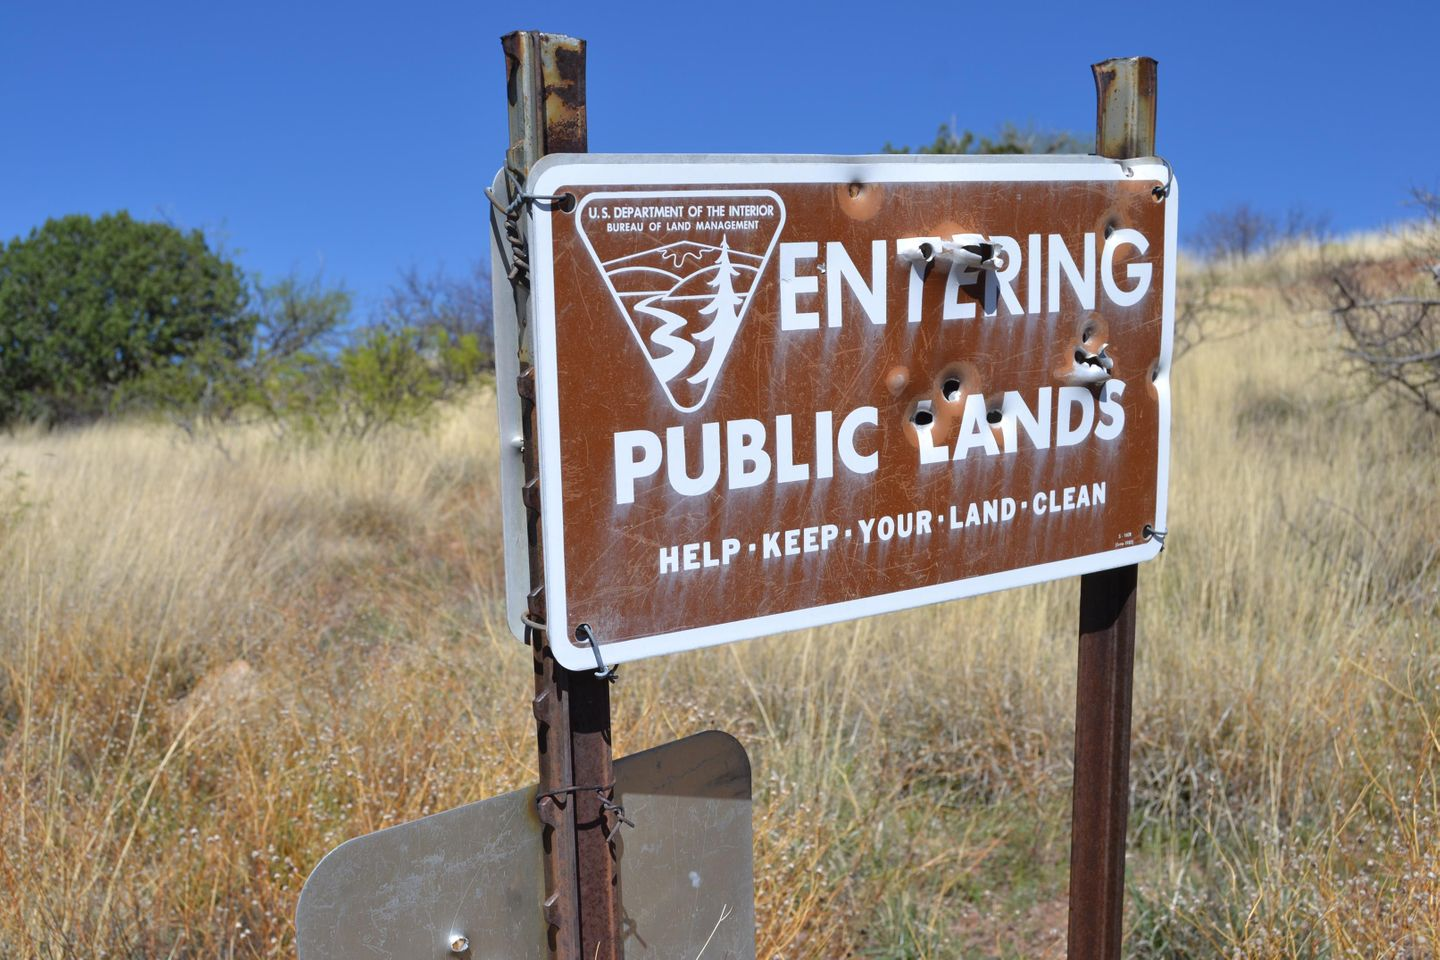 Jackson Cabin/Muleshoe Ranch Road - Waypoint 12: Entering Public Lands